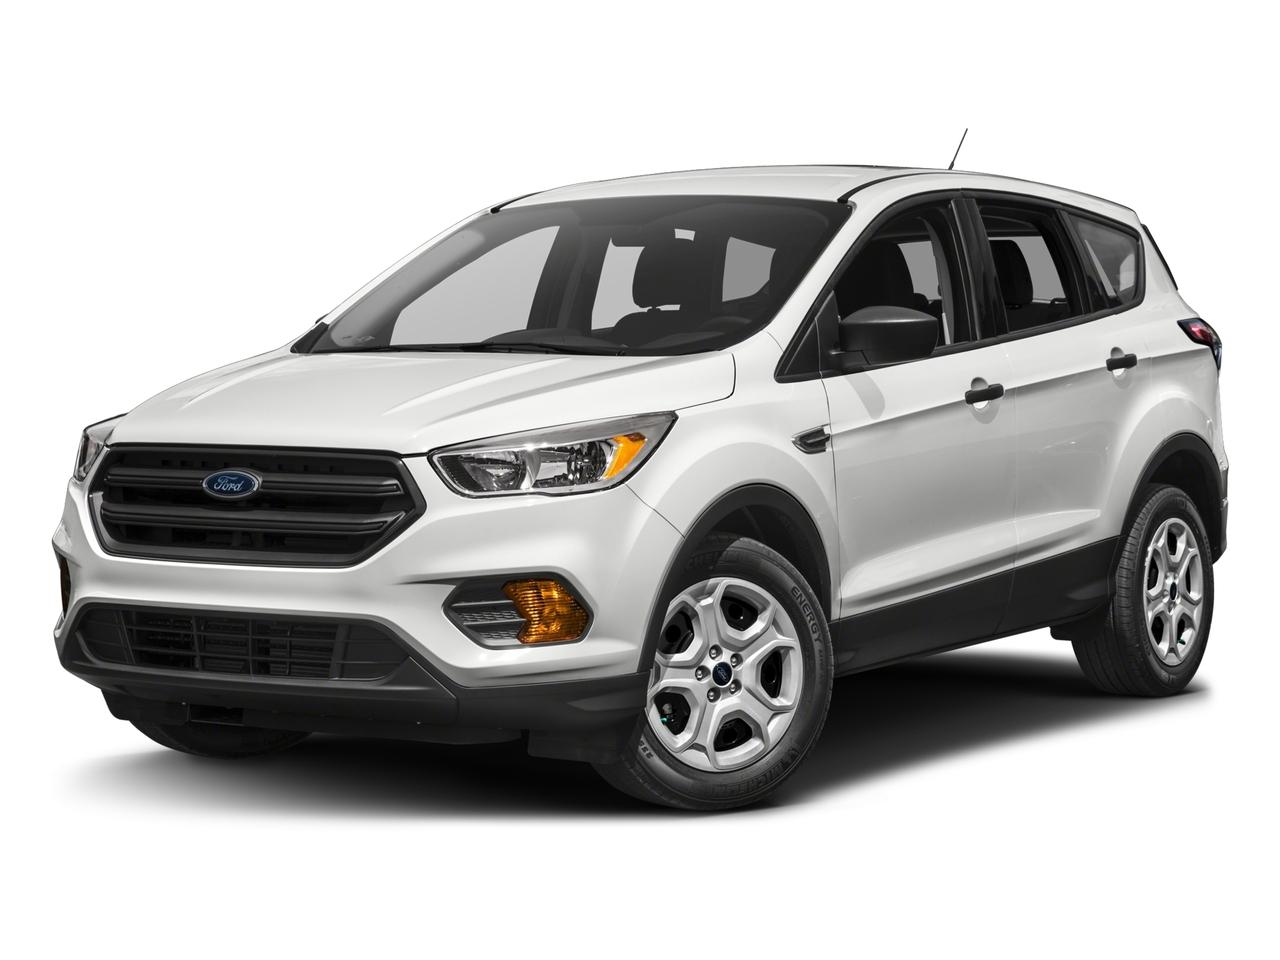 2017 Ford Escape Vehicle Photo in Worthington, MN 56187